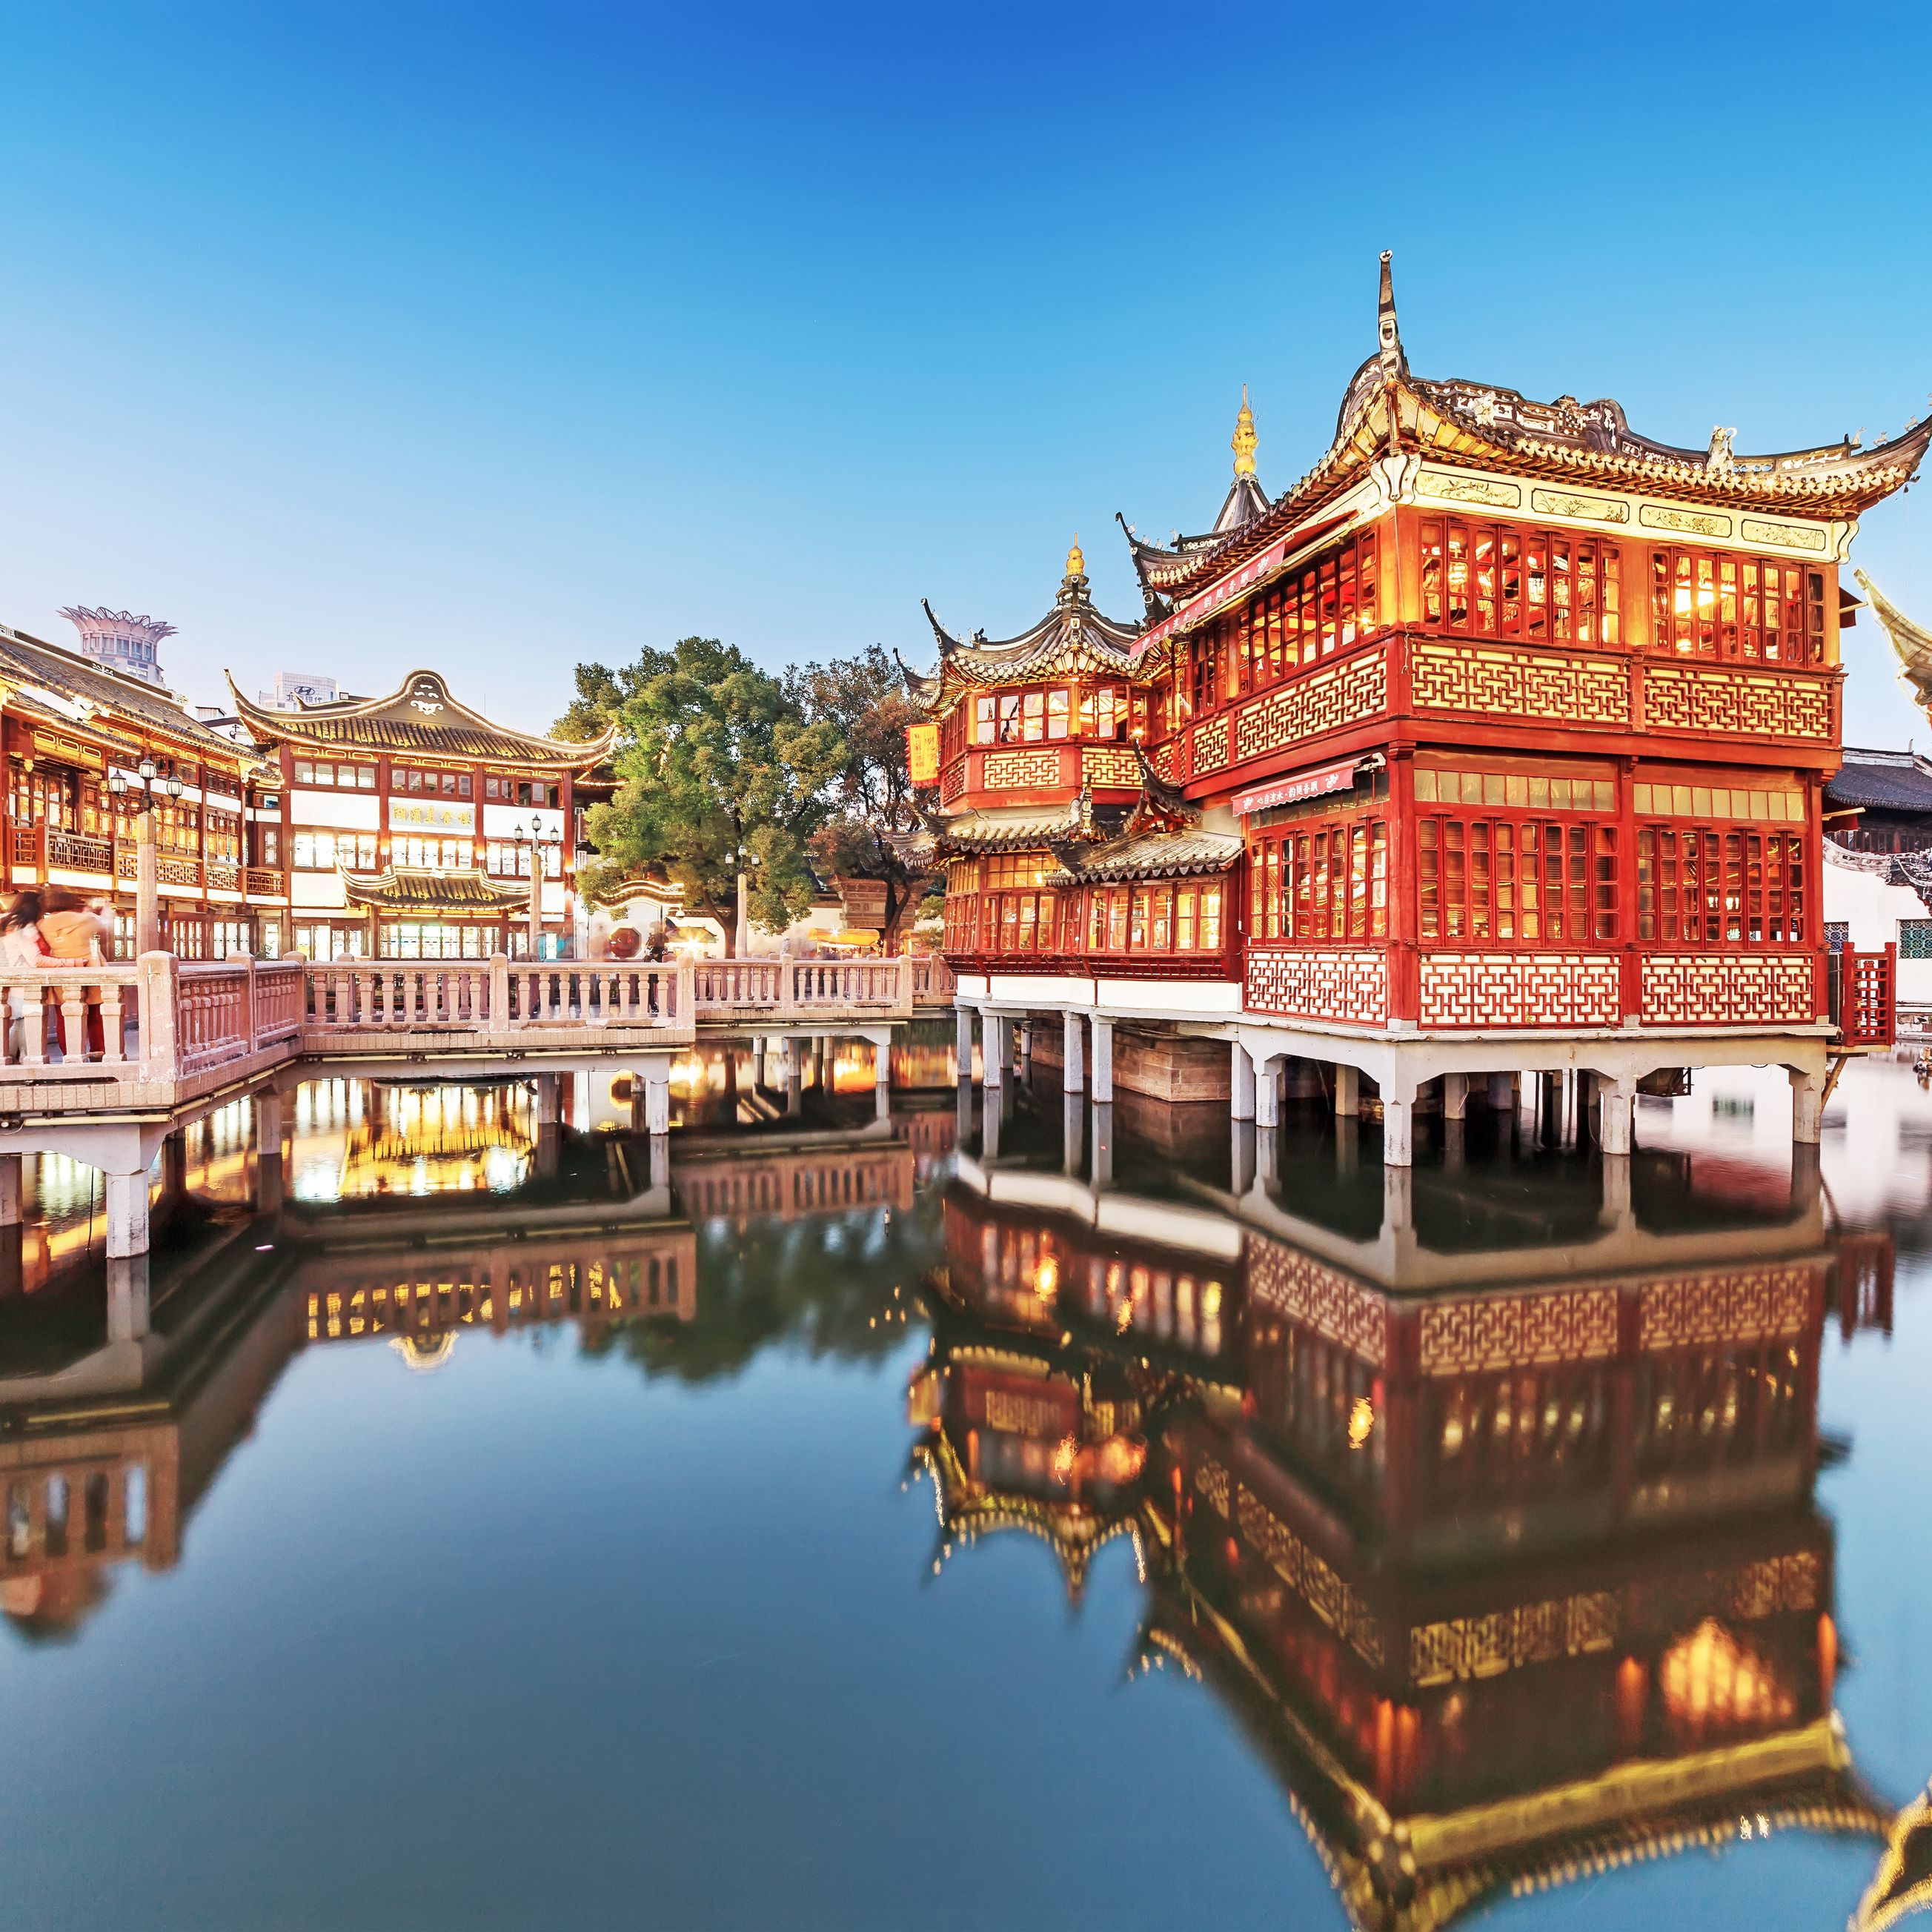 Yu Garden, one of the best attractions in Shanghai